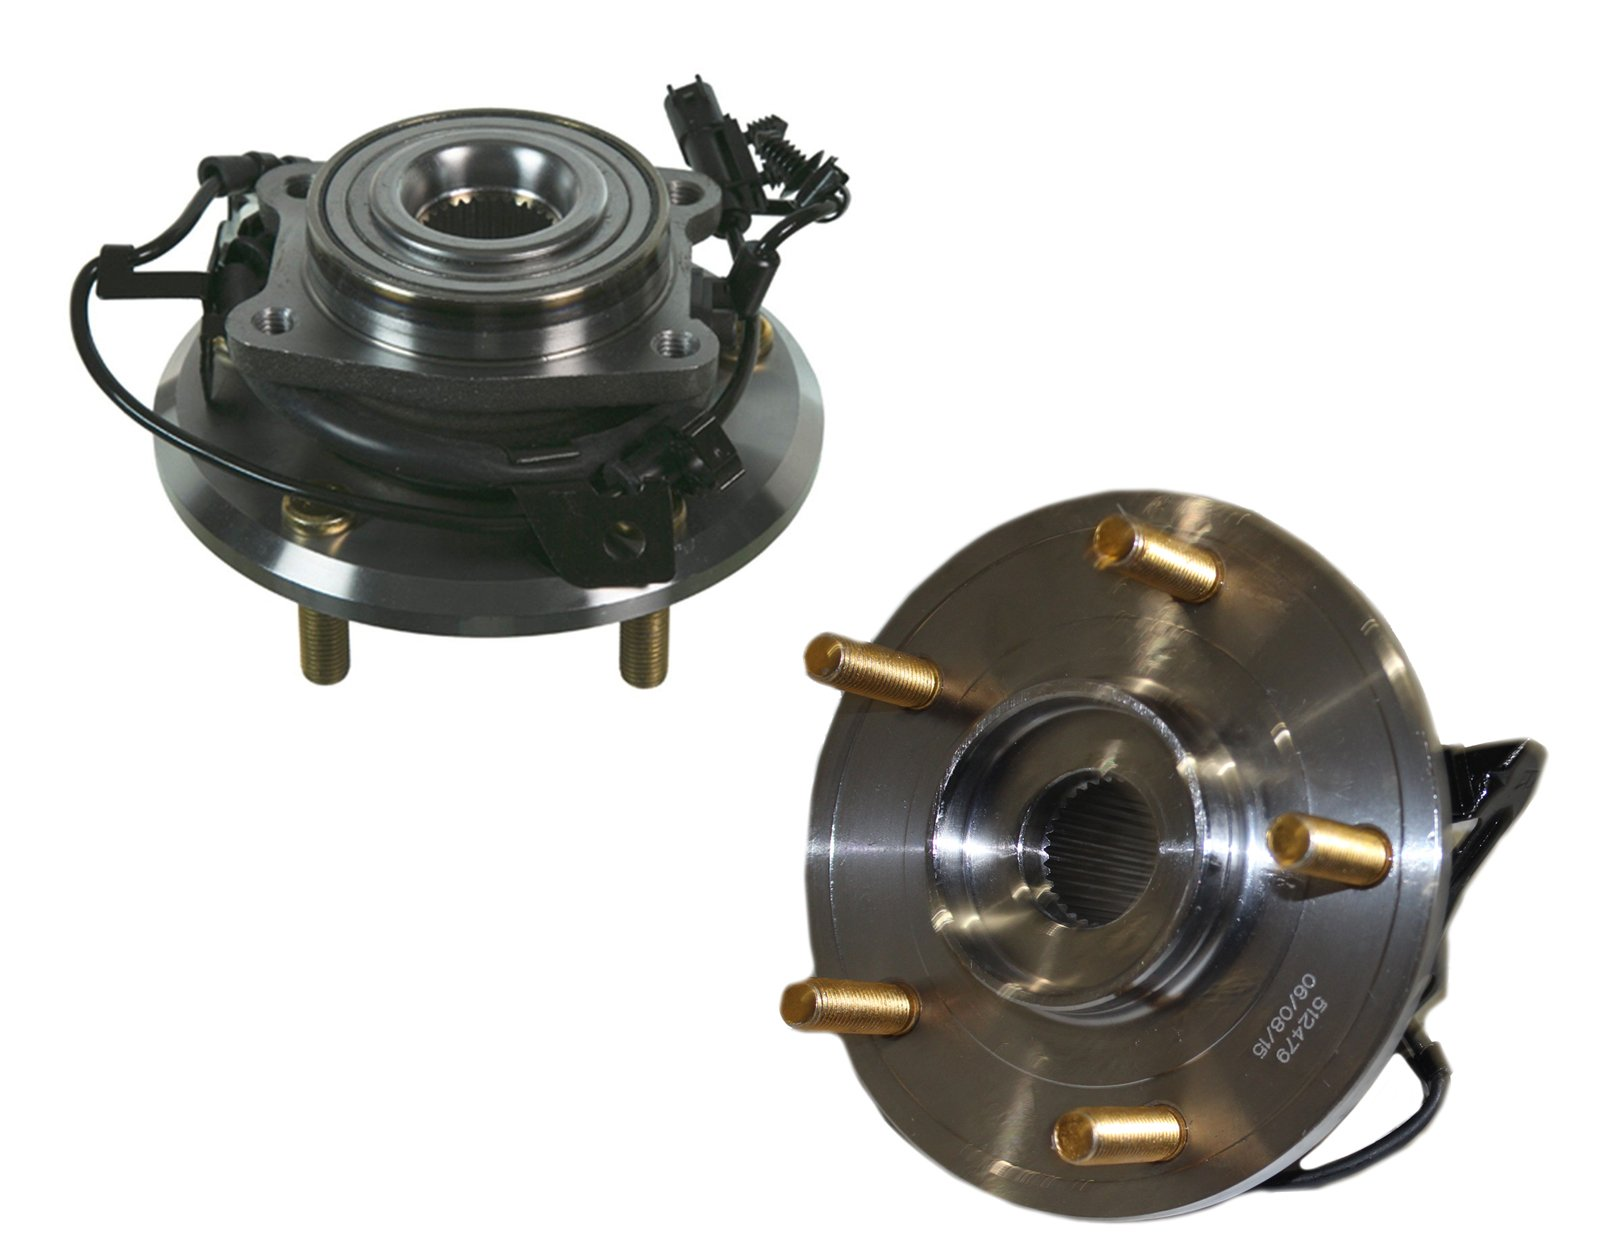 Detroit Axle - (2) REAR Wheel Bearing and Hub Assembly Set fits Driver and Passenger Side for 2009-2015 Dodge Journey - [2014 ProMaster 1500] - 2014-2015 ProMaster 2500/3500